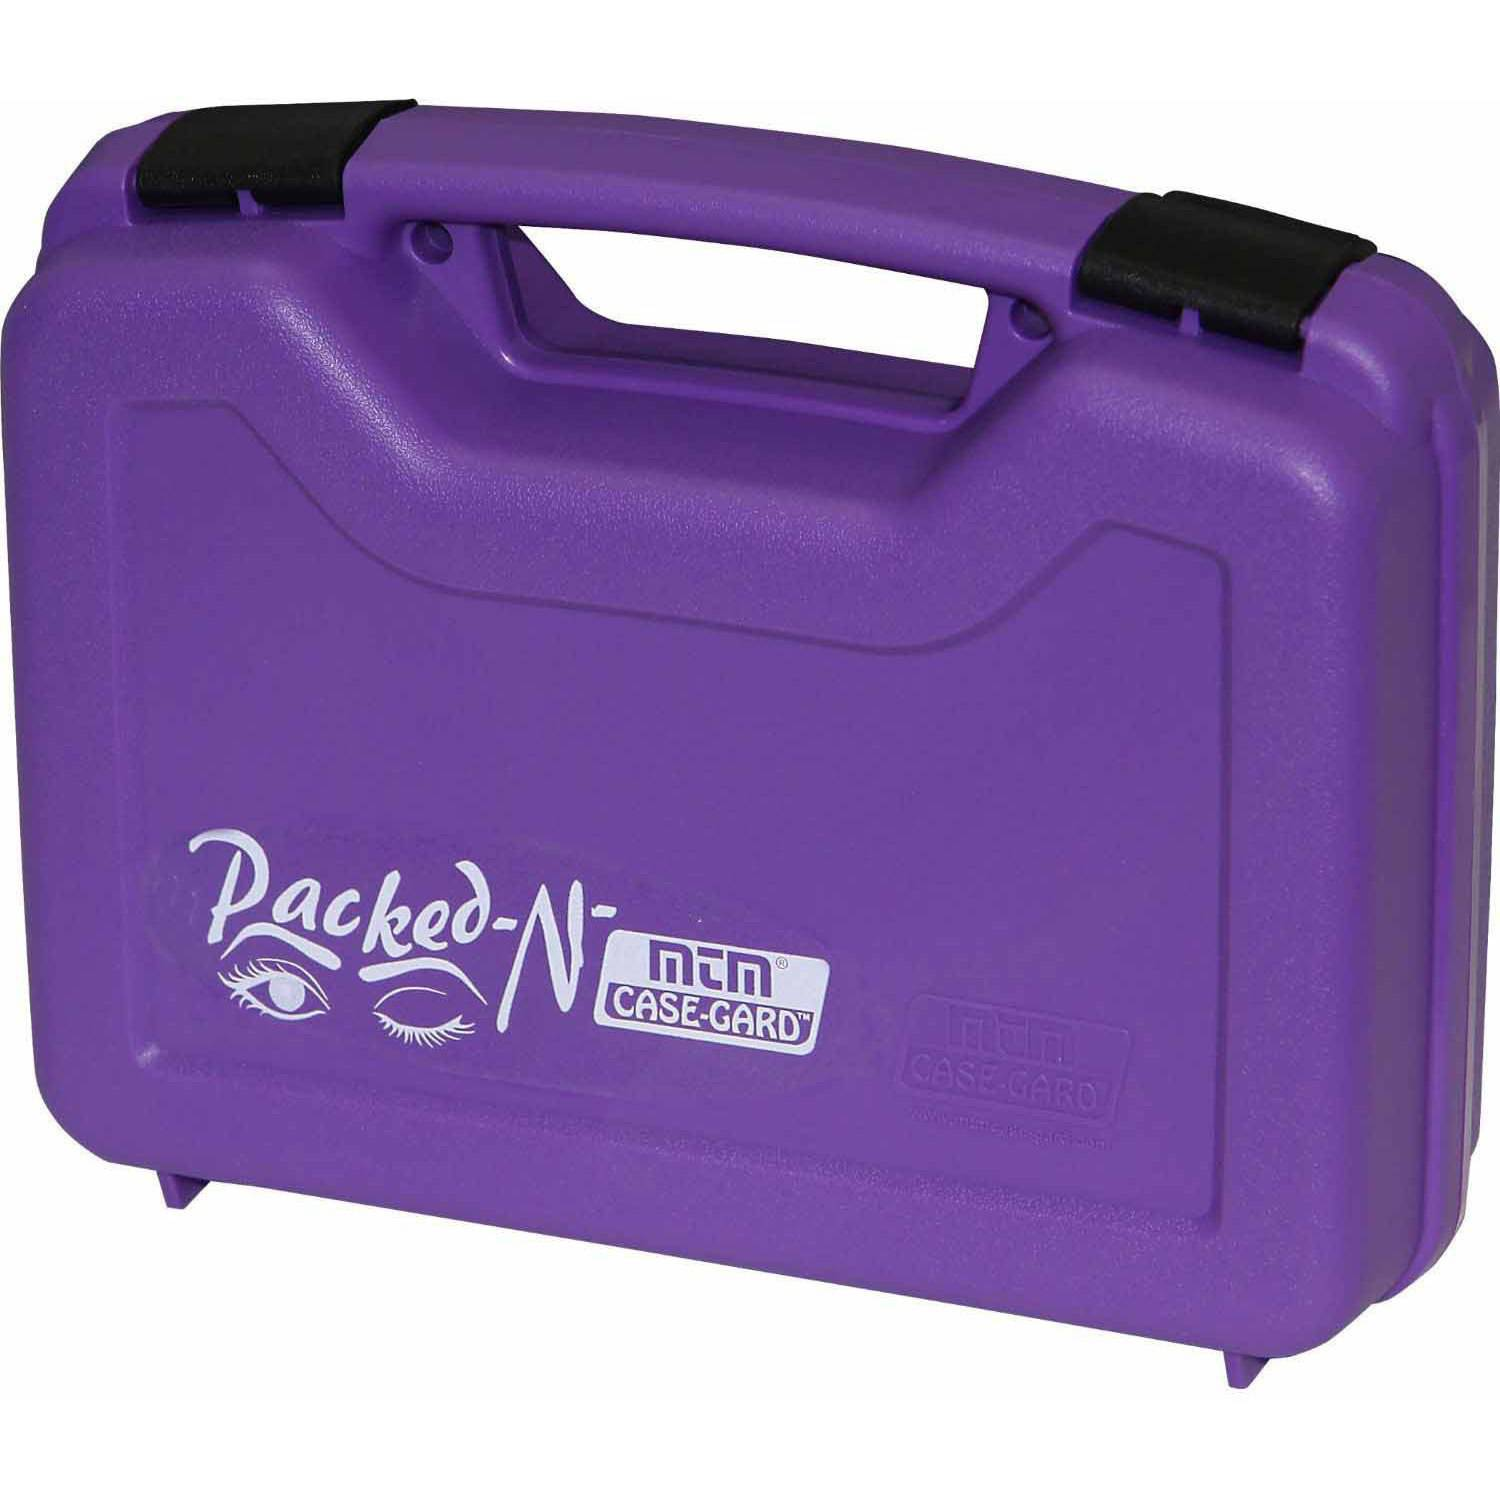 HANDGUN CASE SINGLE UP TO 4 REVOLVER PURPLE